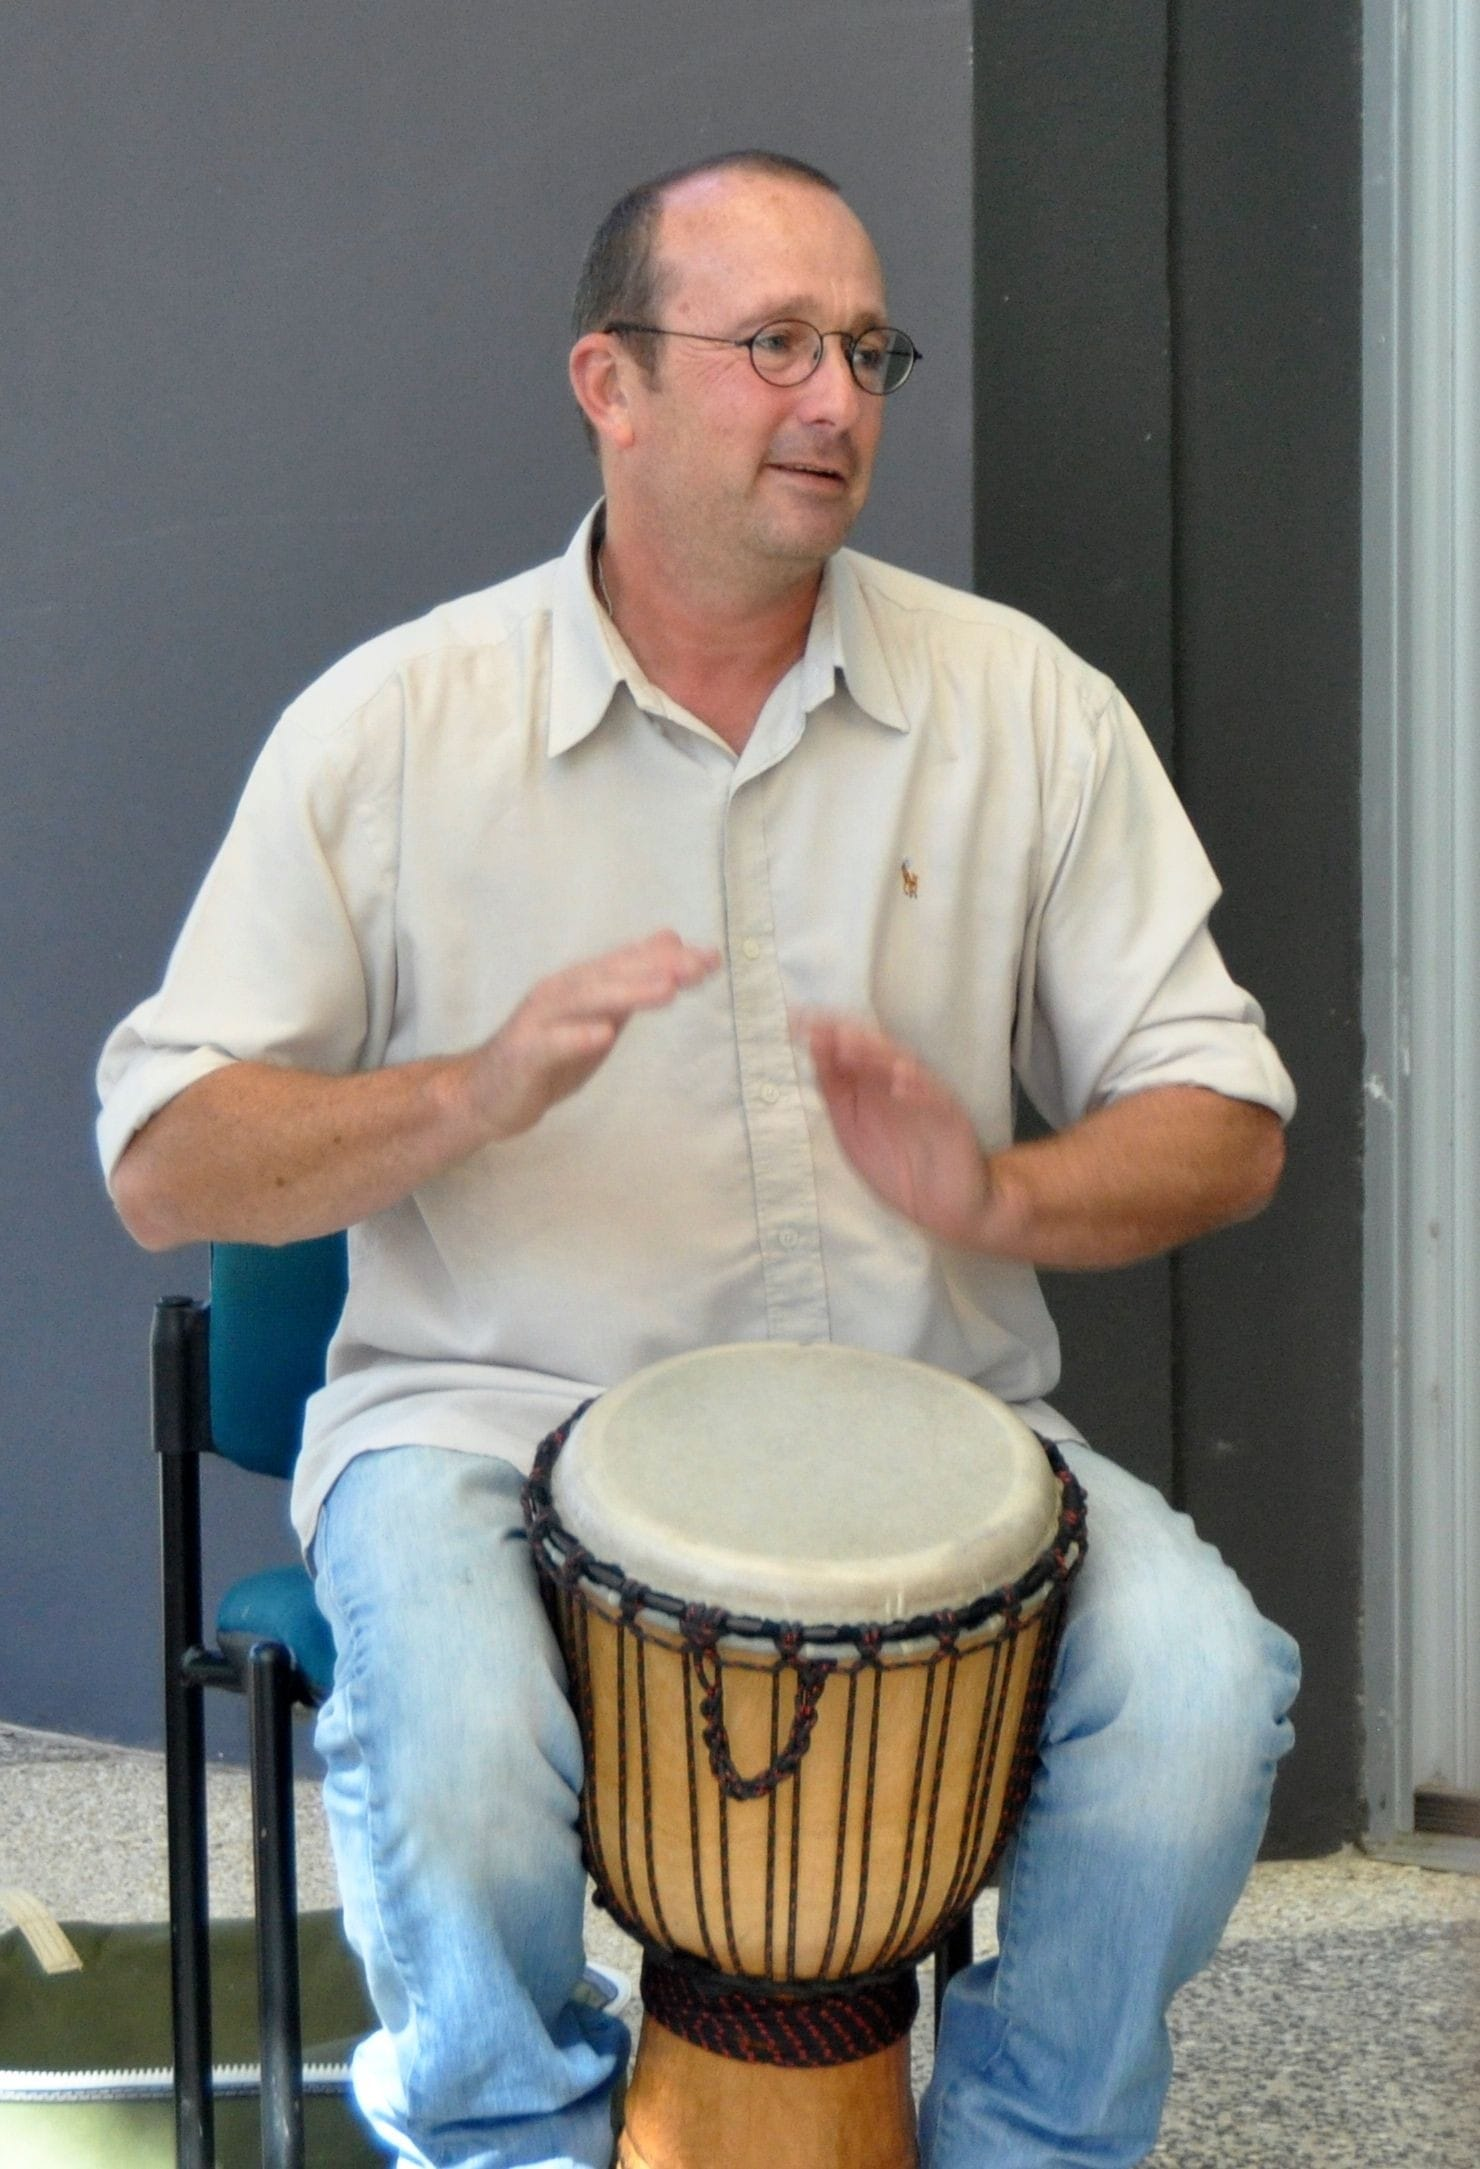 Bill Schneider - Drum Leader & ASD CounsellorBill Schneider graduated from Christian Heritage College in 2016 with his Bachellor of Social Science (Counselling) degree. His passion for counselling arose from witnessing the struggles many people were facing in small comunities in the remote ares of Queensland Australia. For the past six years Bill has been working as a Special School Chaplain bringing his passions for Social Skills and Drumming to young people with varying disabilities. Bill has recently completed his Masters degree in Autism studies at Griffith University and is presently undertaking research in the field of rehabillitation.EducationMasters degree in AutismBachellors degree in Social Science (Counselling)